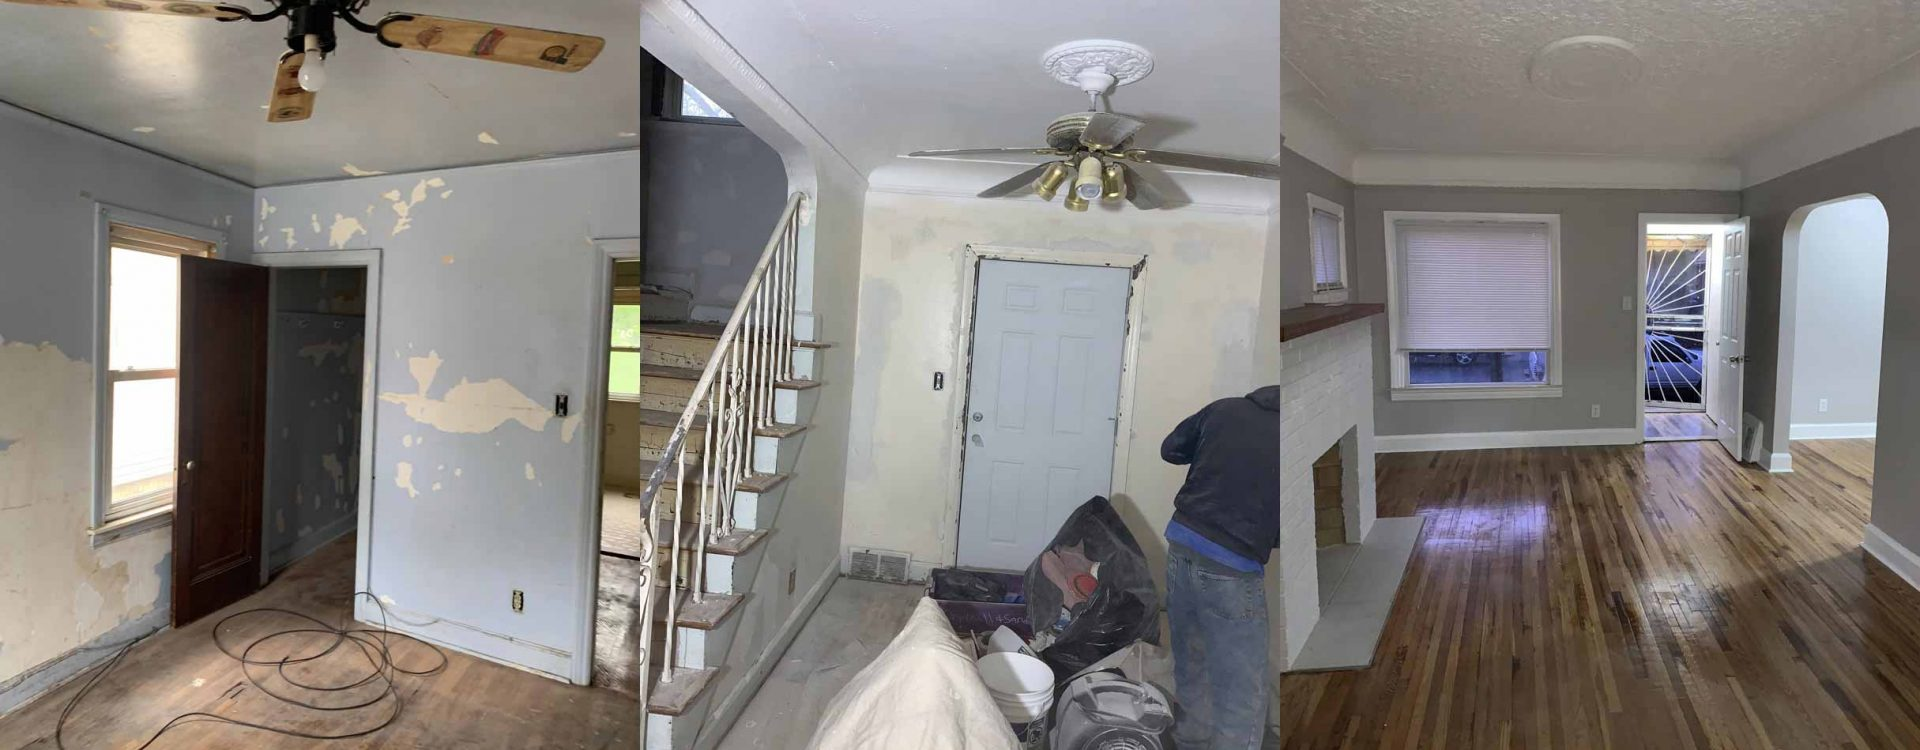 before-during-after-construction-project-Ward-Detroit-MI-header